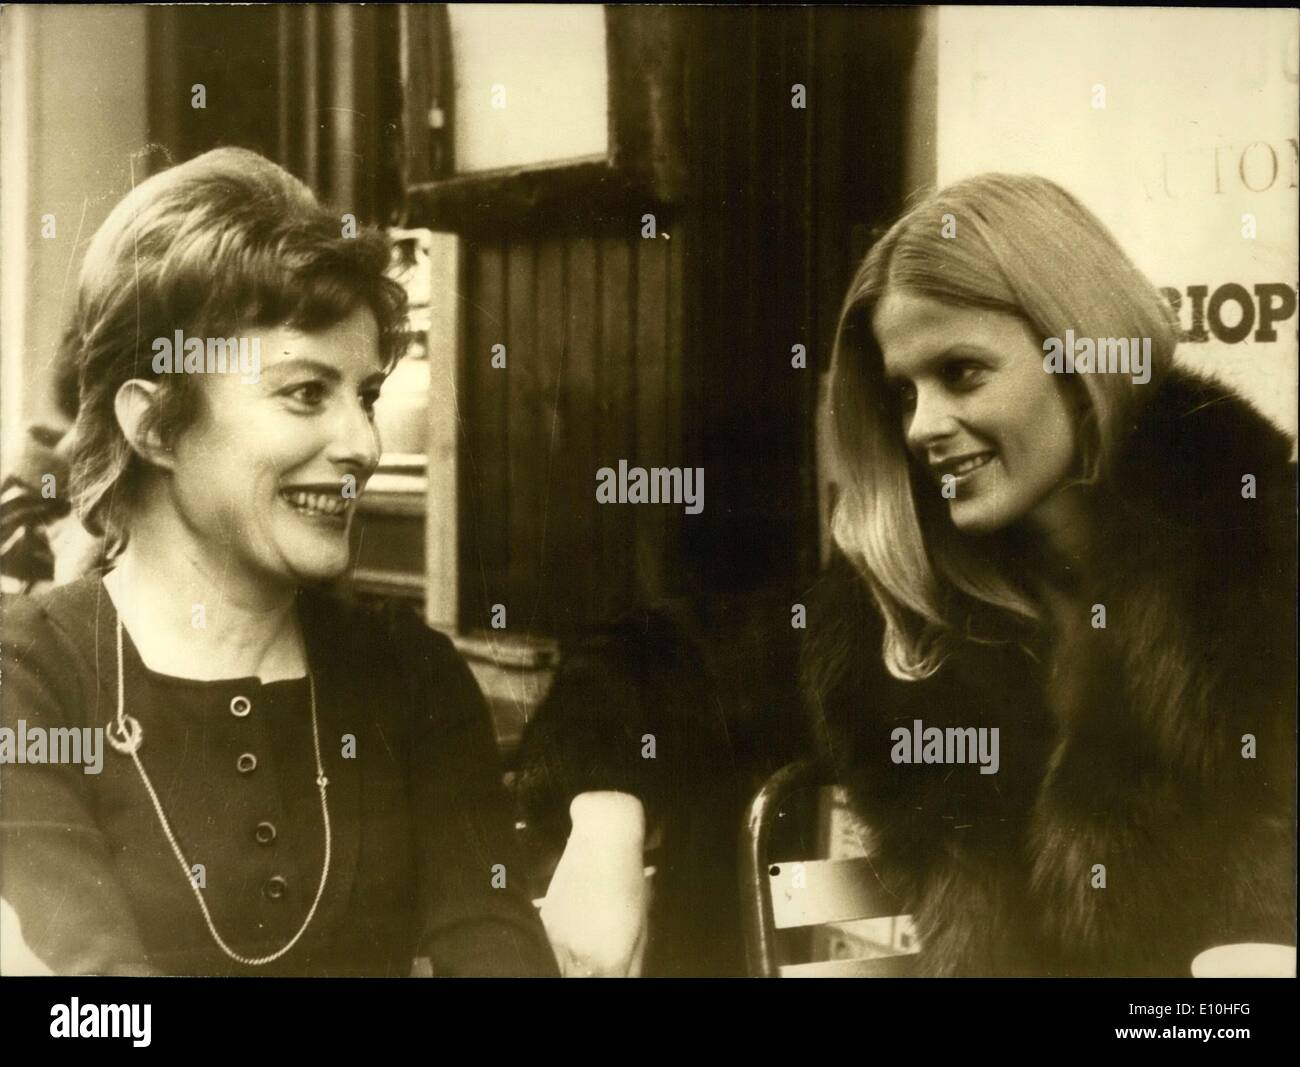 Nov. 14, 1972 - Actress Karin Schubert Speaking with Author Xaviere - Stock Image